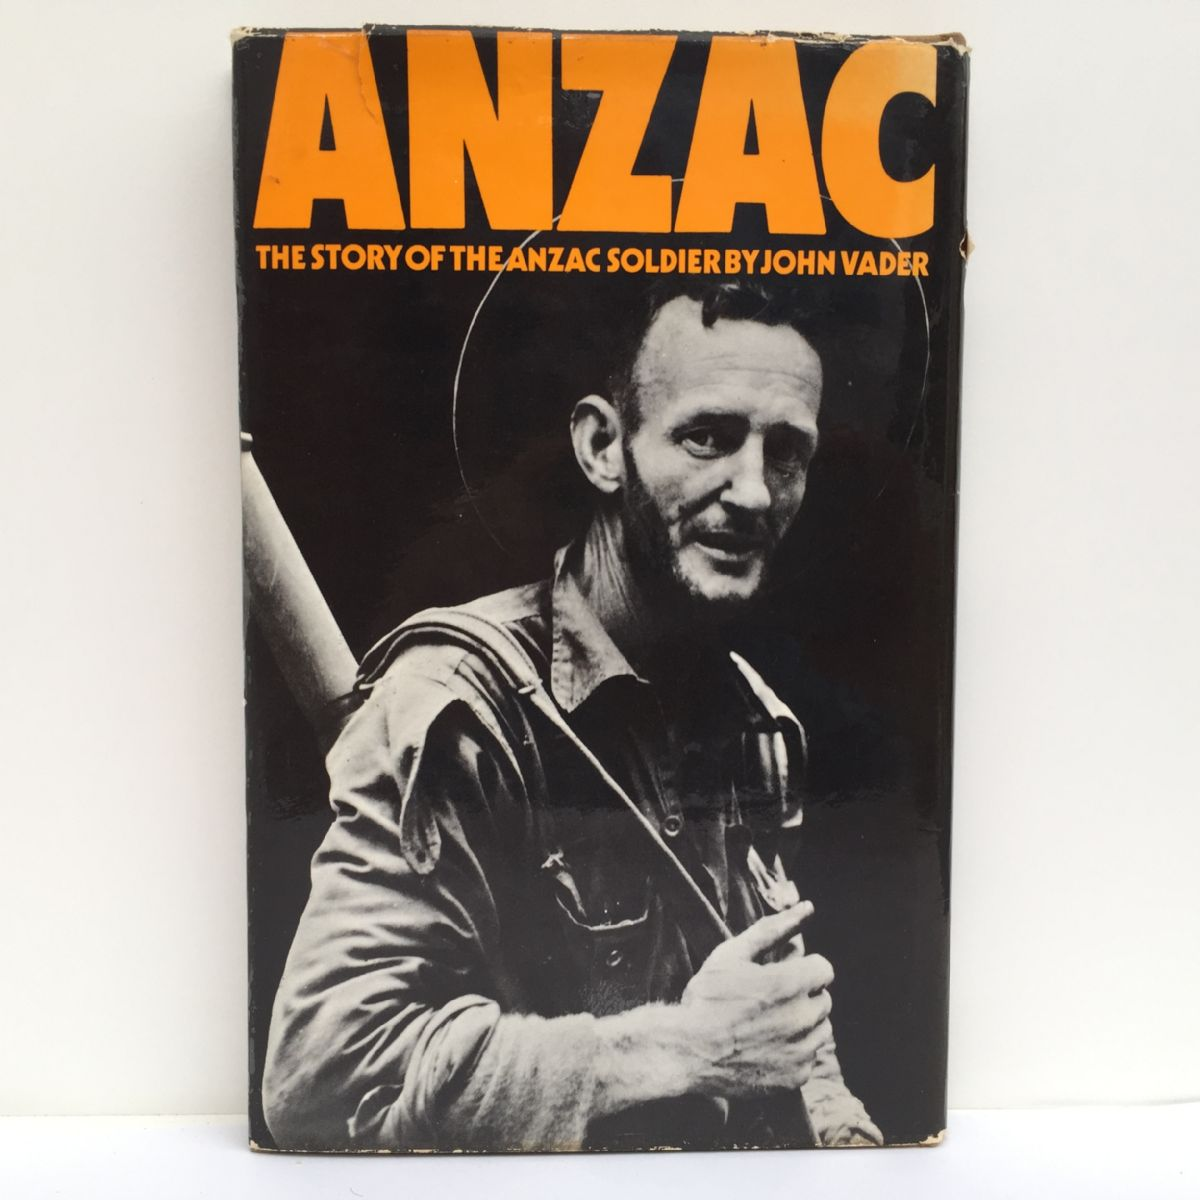 ANZAC: The Story of the Anzac Soldier